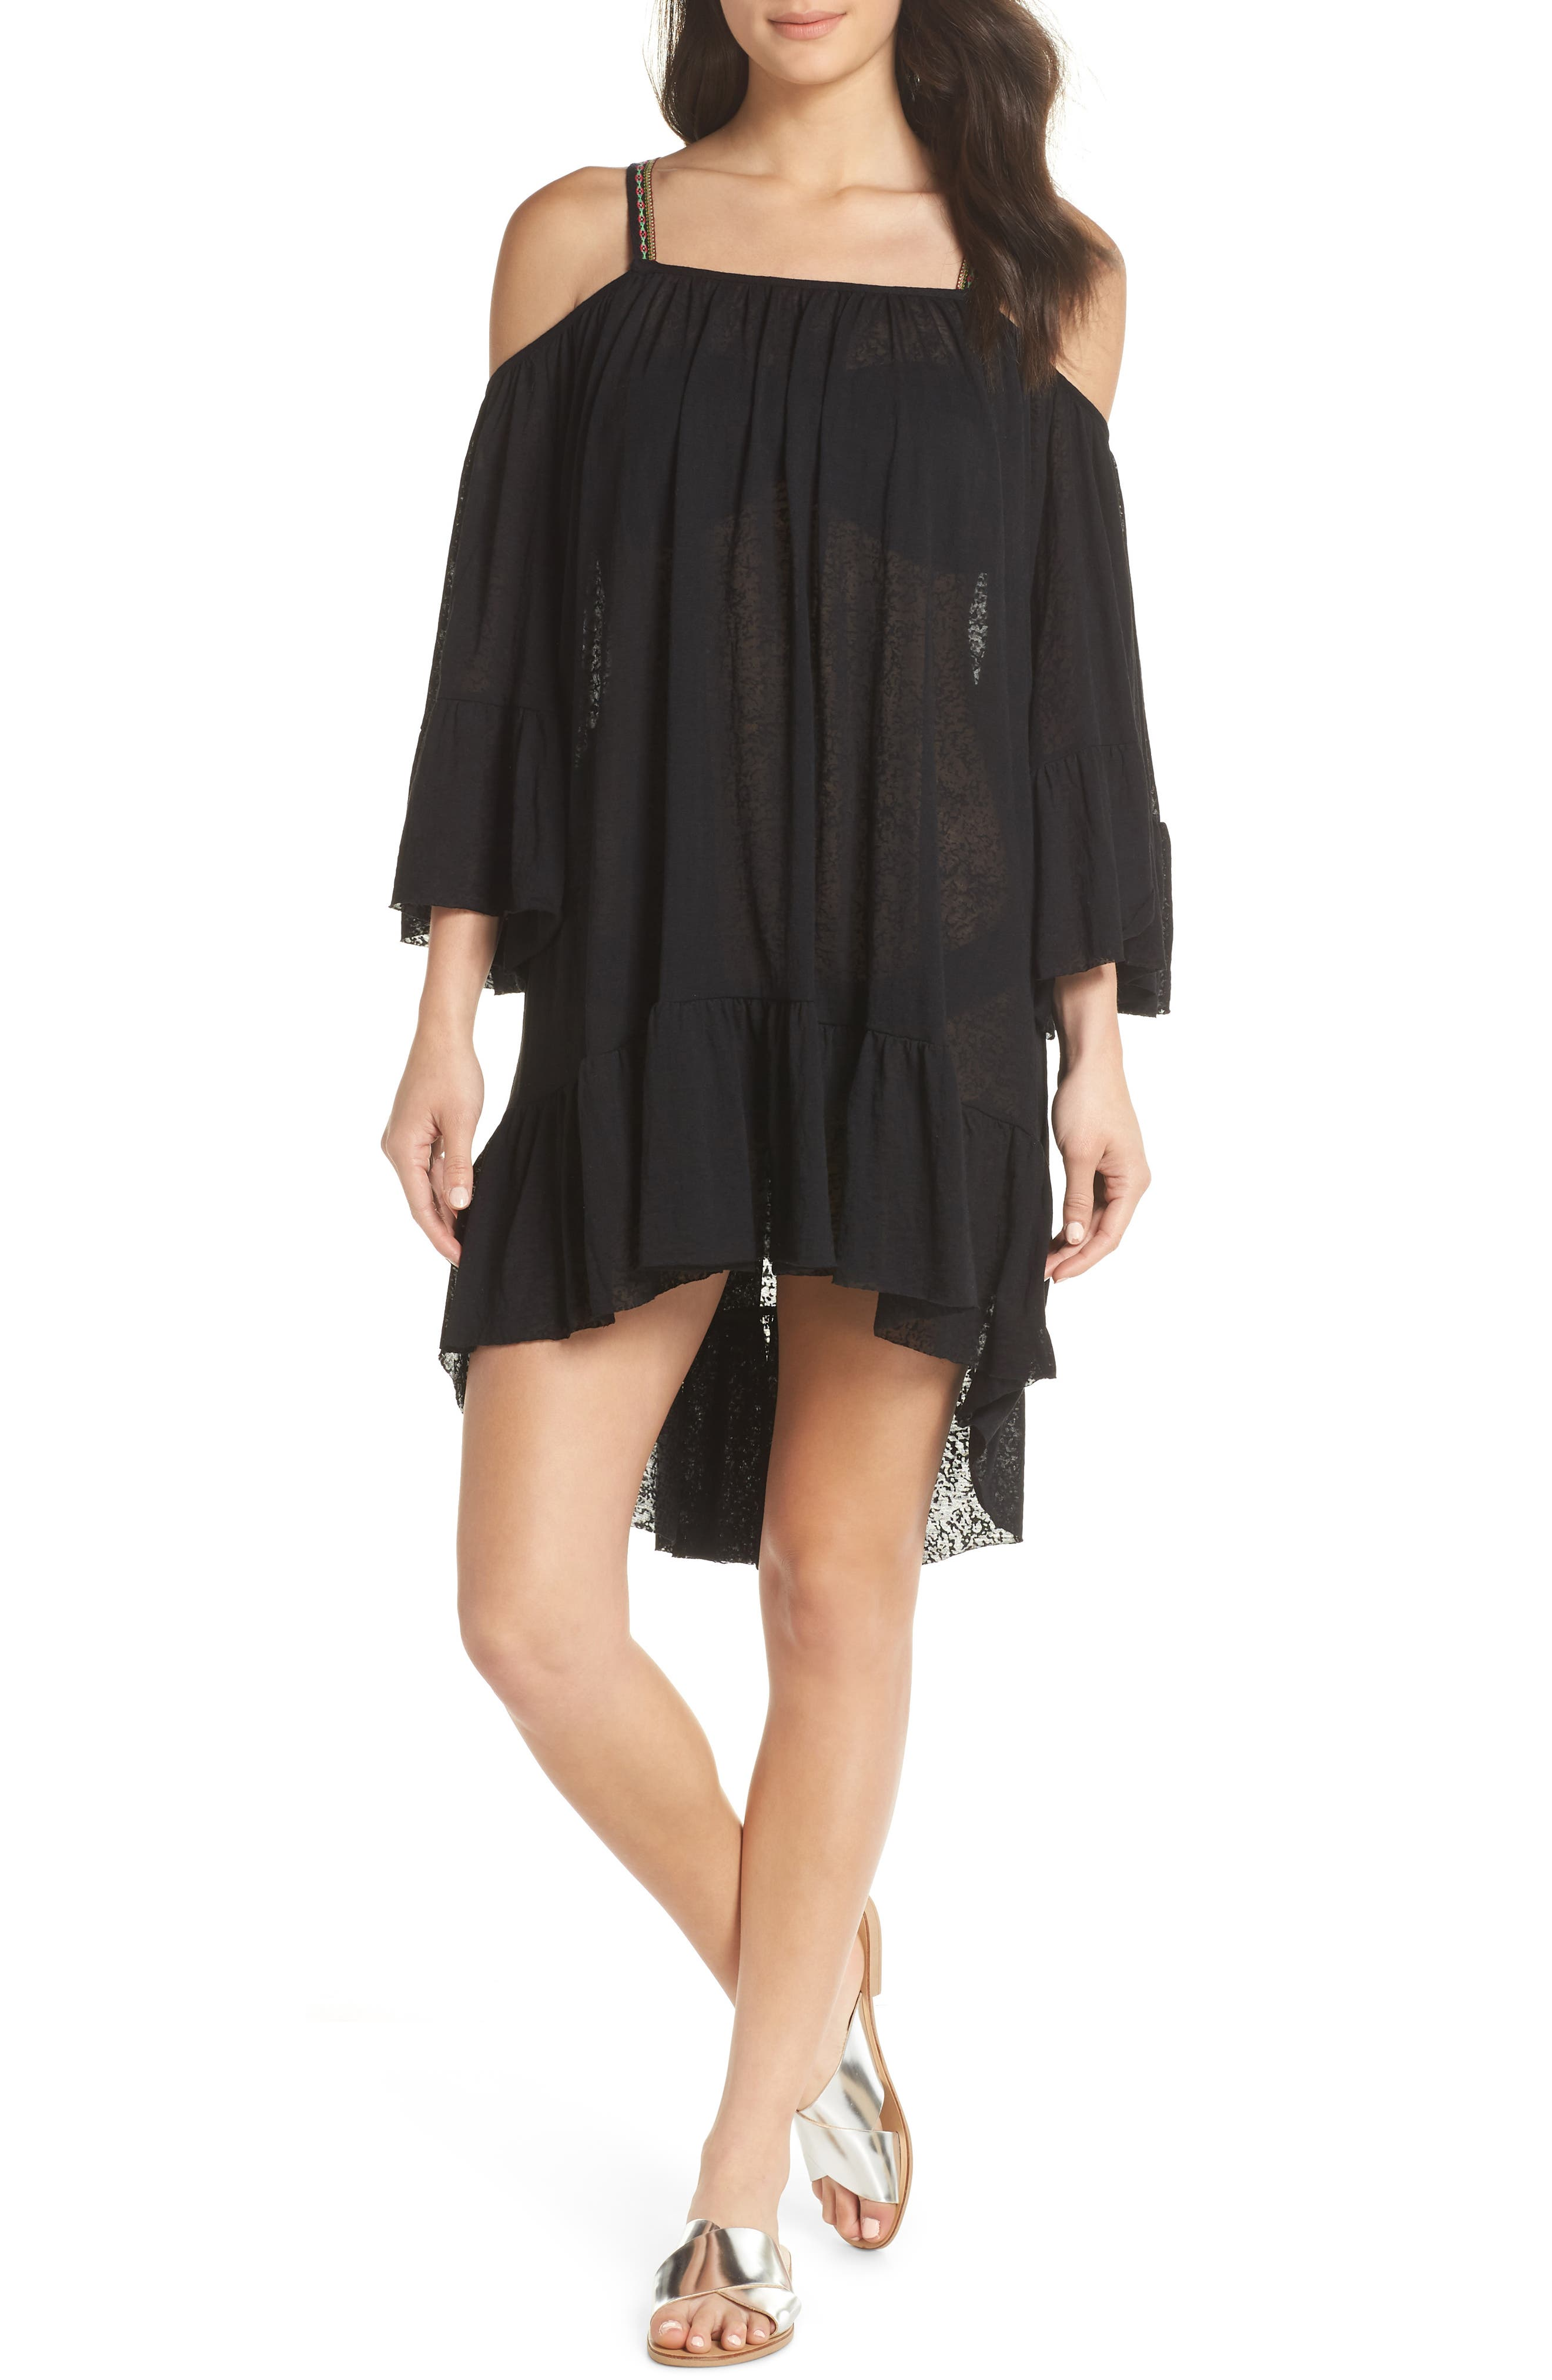 Dancing Cover-Up Dress,                         Main,                         color, Black